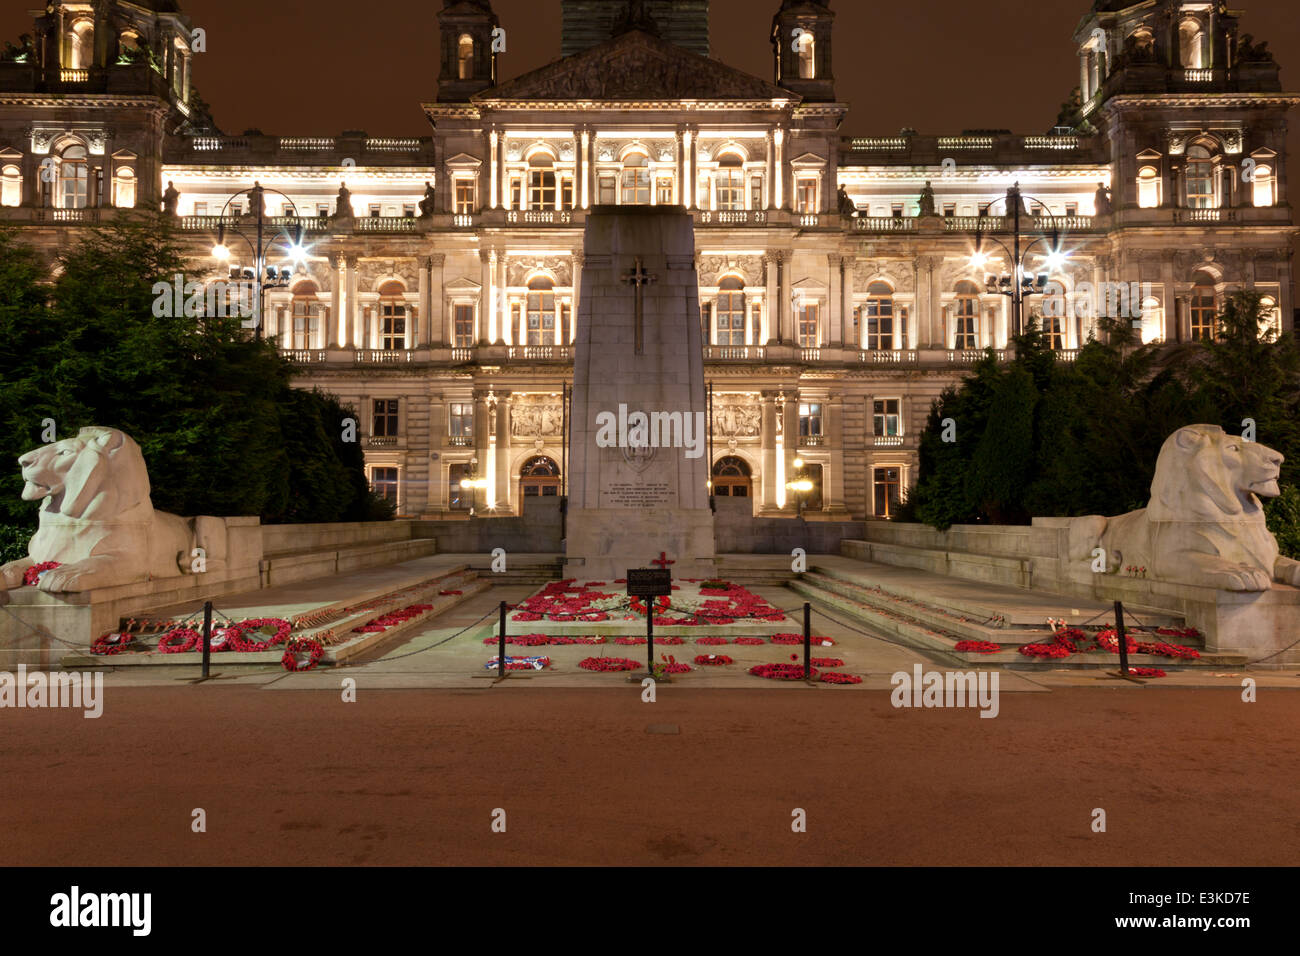 Cenotaph at George Square Glasgow - Stock Image